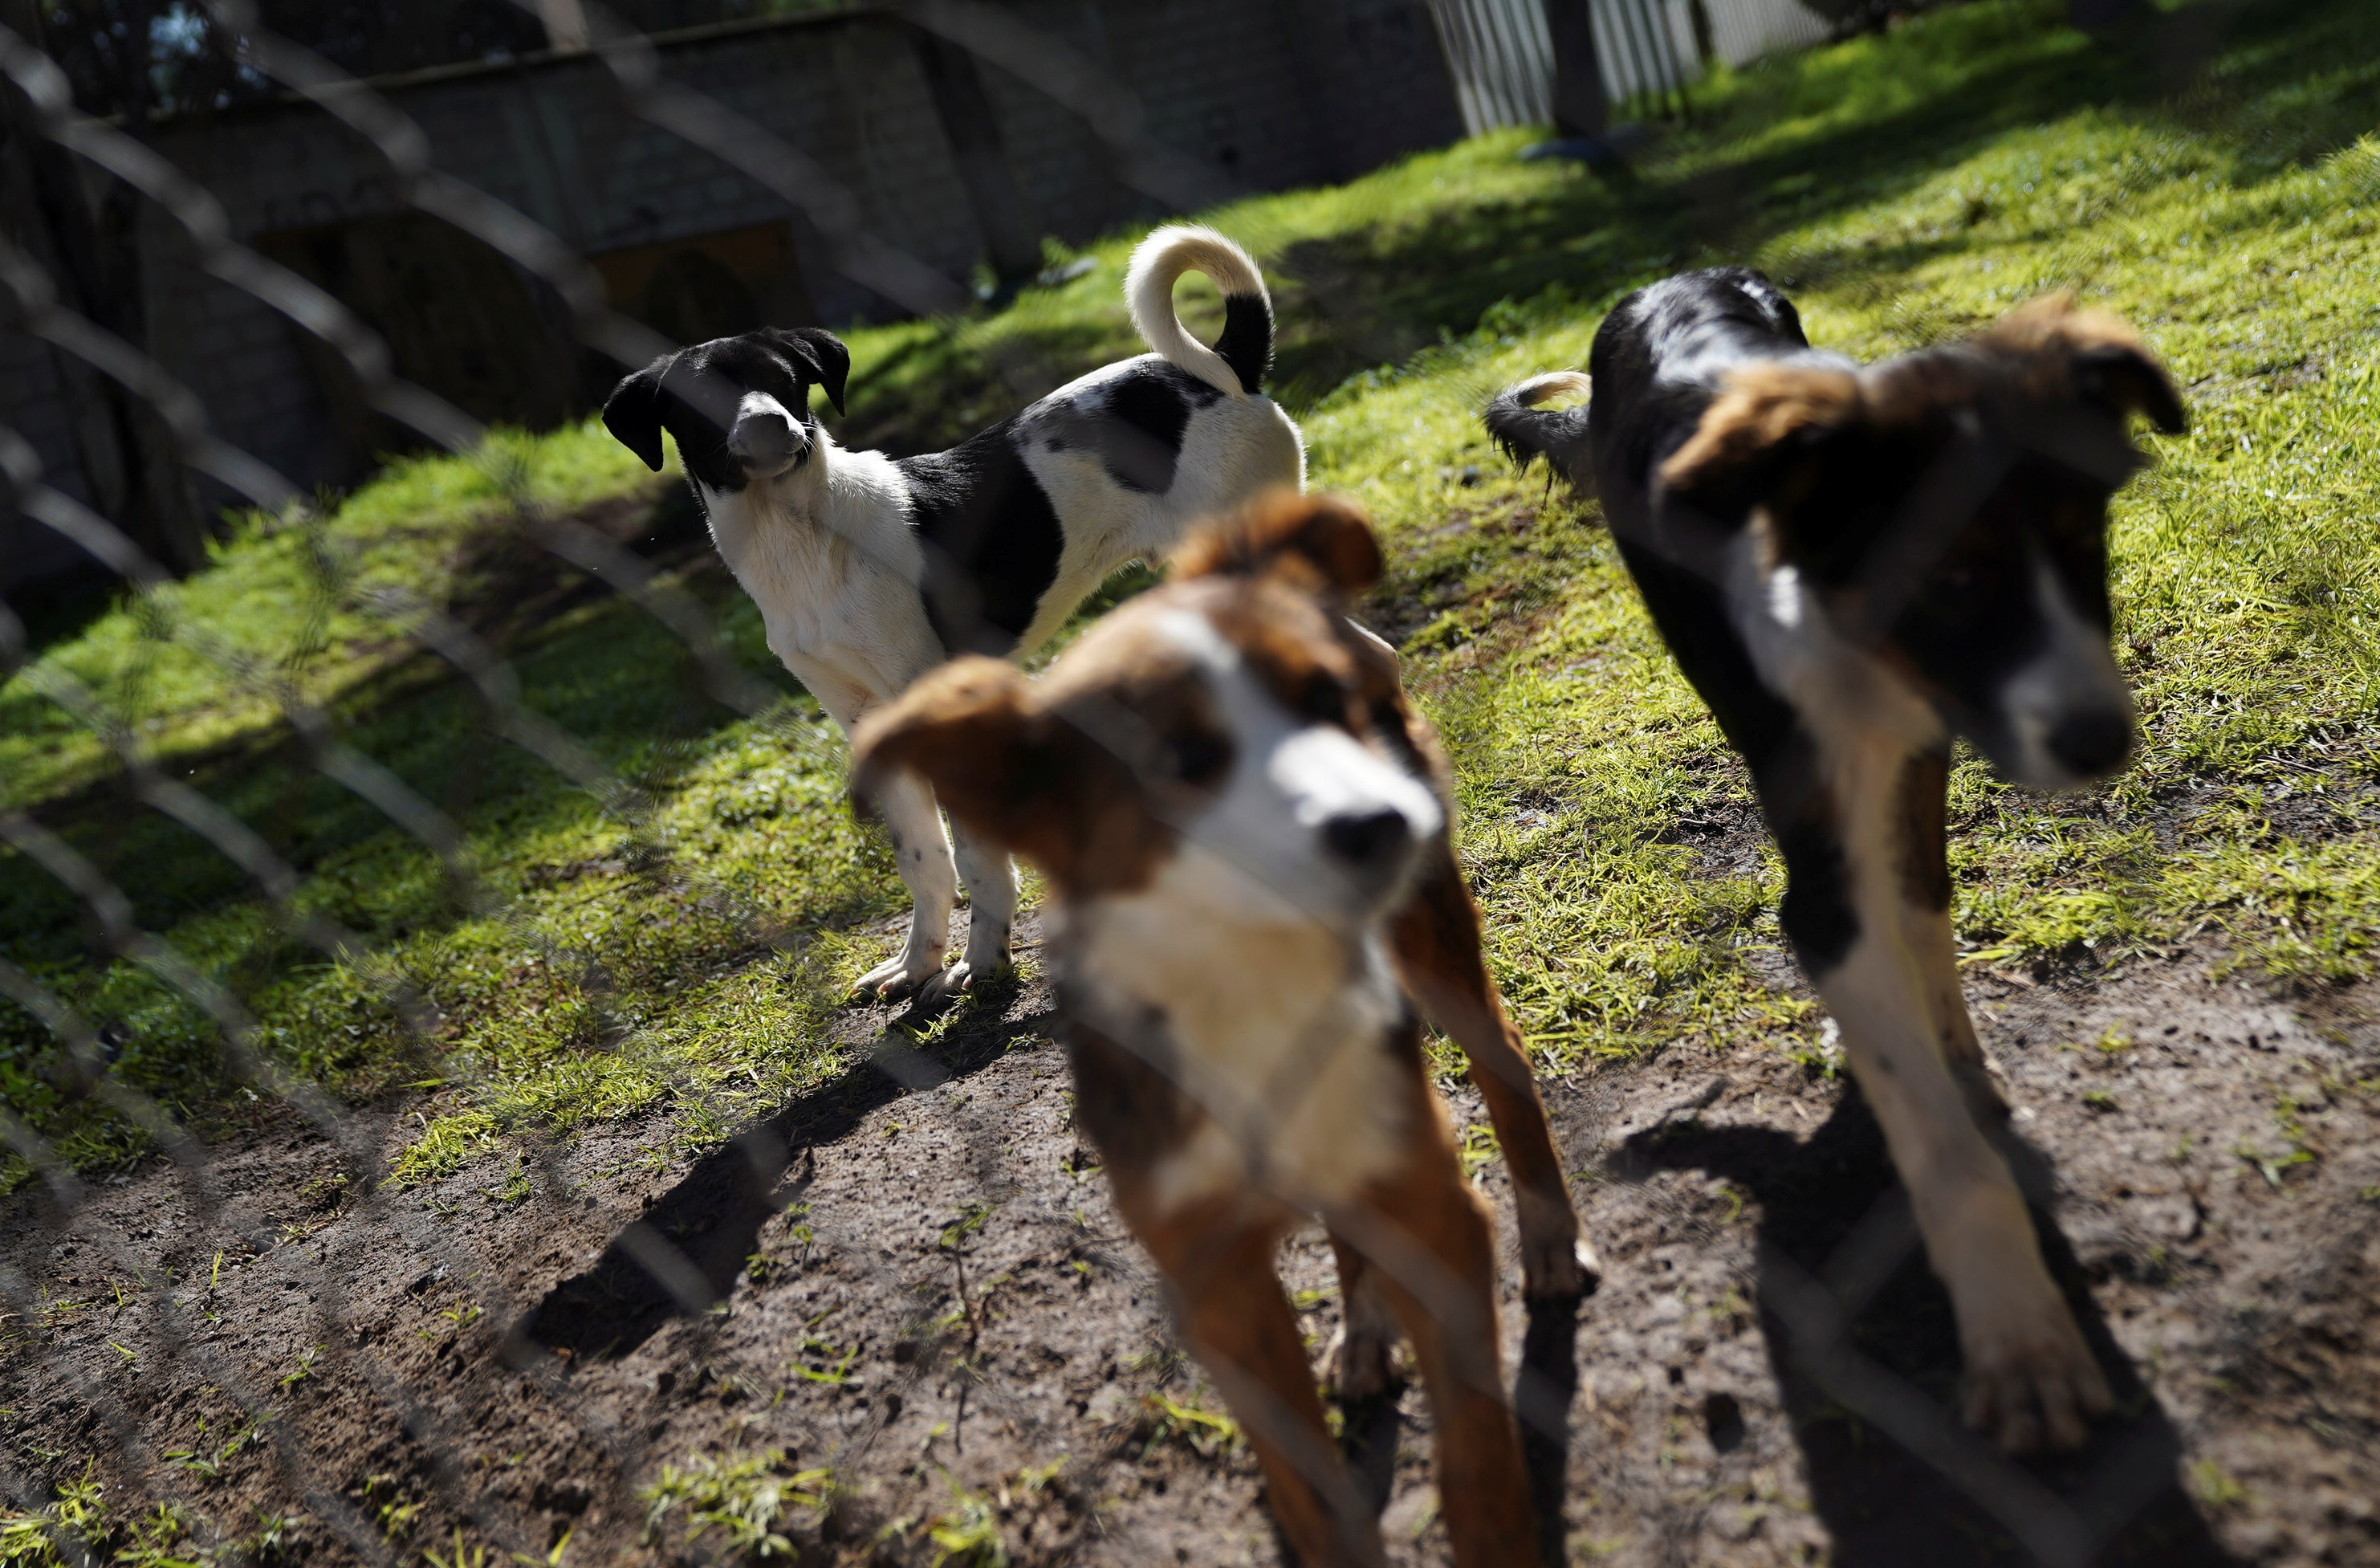 Street dogs find homes, vocations after being rescued by Mexican army